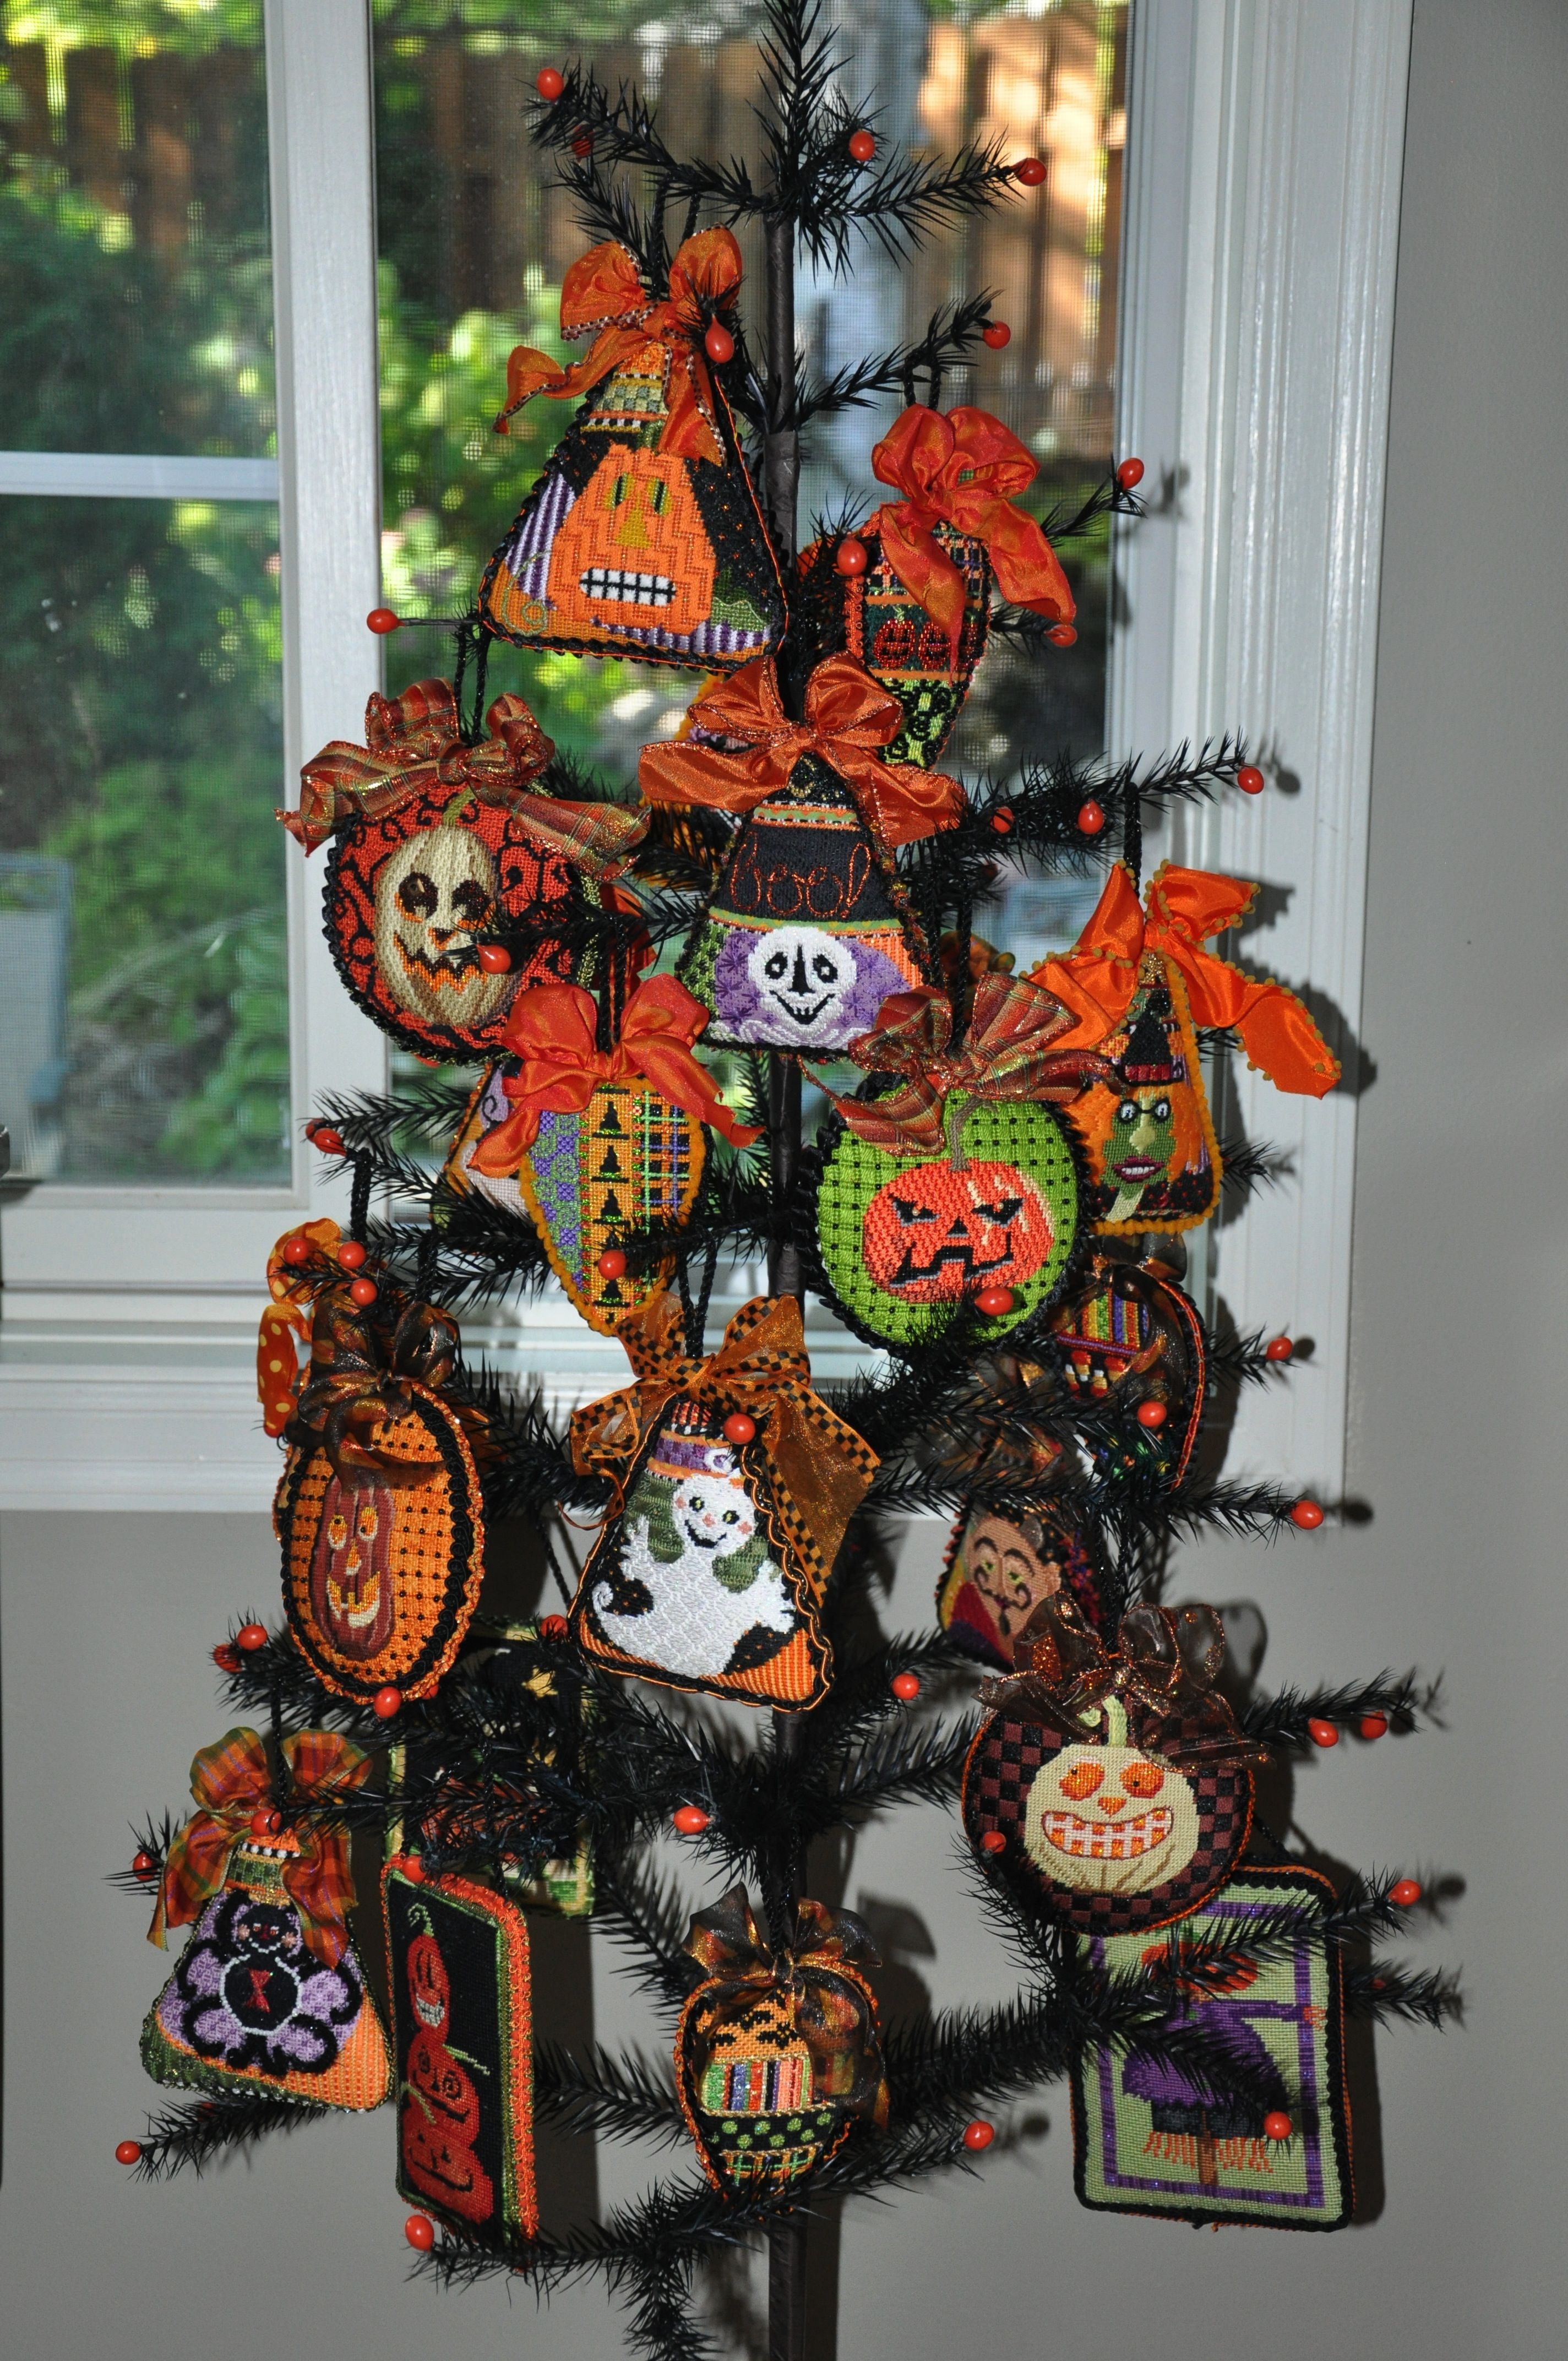 Halloween Tree With Creepy Characters By Needle Deeva Stitch By Robin King Cross Stitch Tree Halloween Cross Stitch Patterns Halloween Crafts